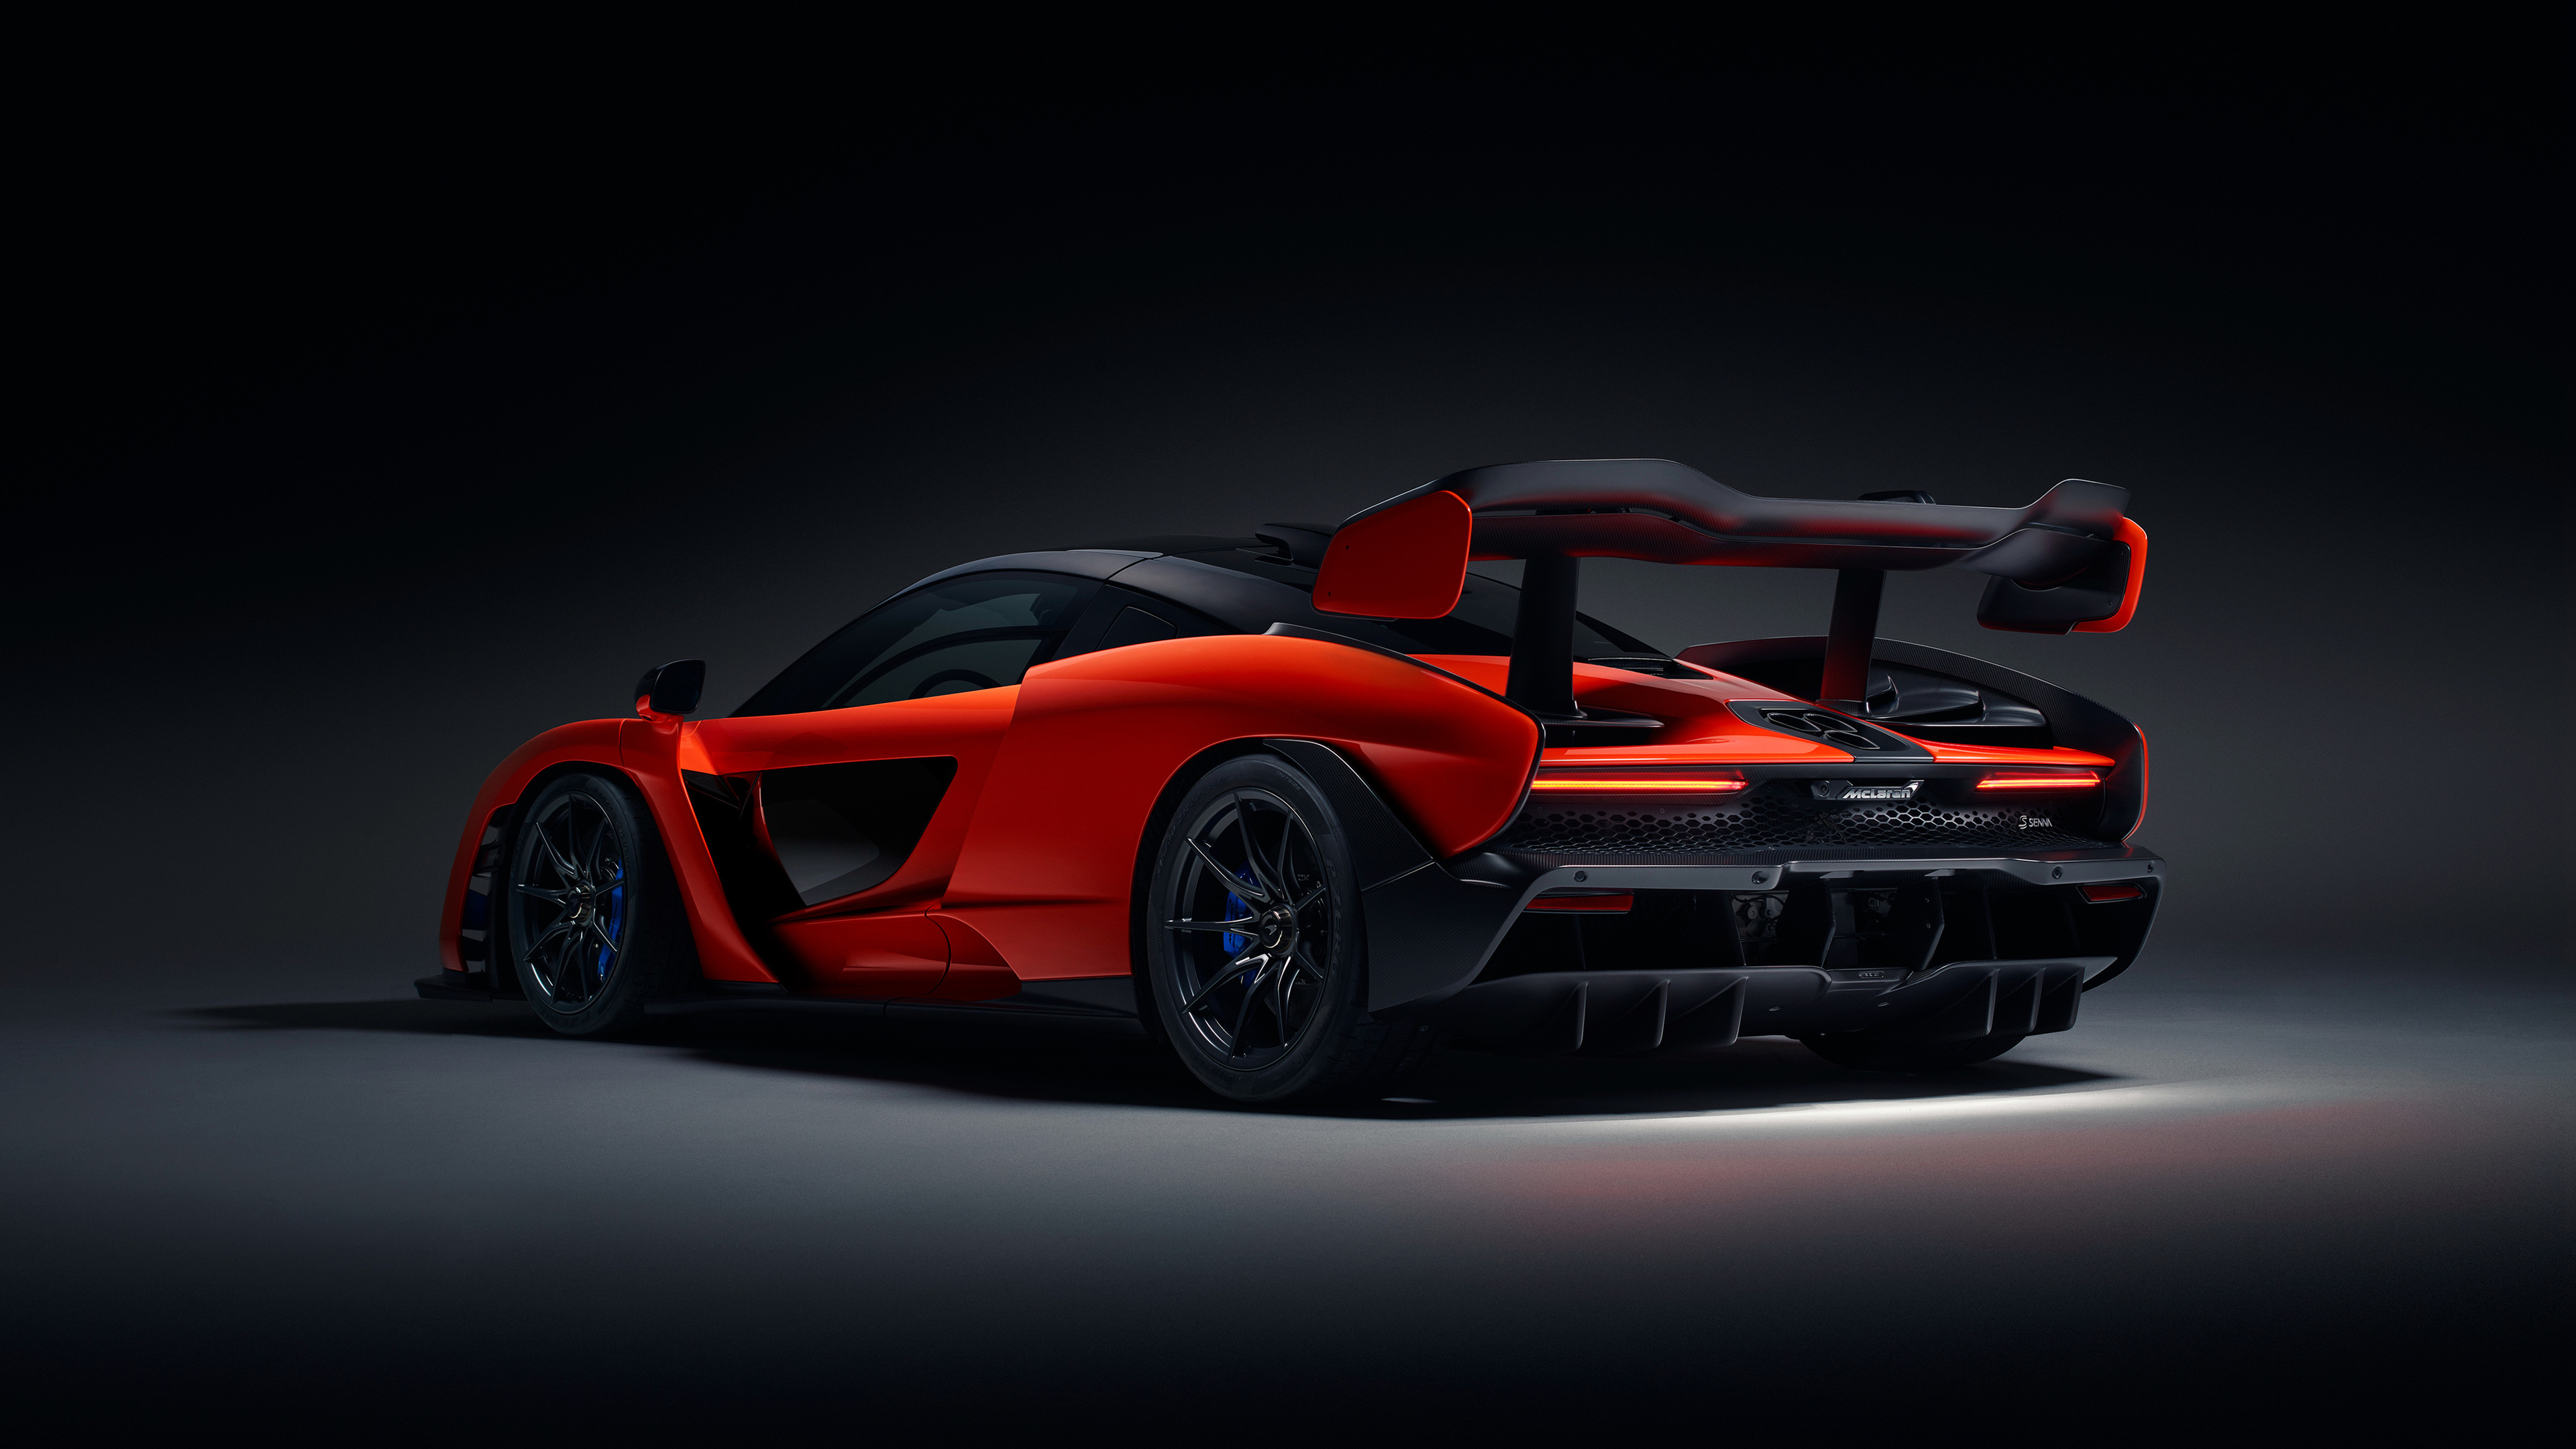 mclaren senna rear lights view 4k 1539108665 - McLaren Senna Rear Lights View 4k - mclaren wallpapers, mclaren senna wallpapers, hd-wallpapers, 4k-wallpapers, 2018 cars wallpapers